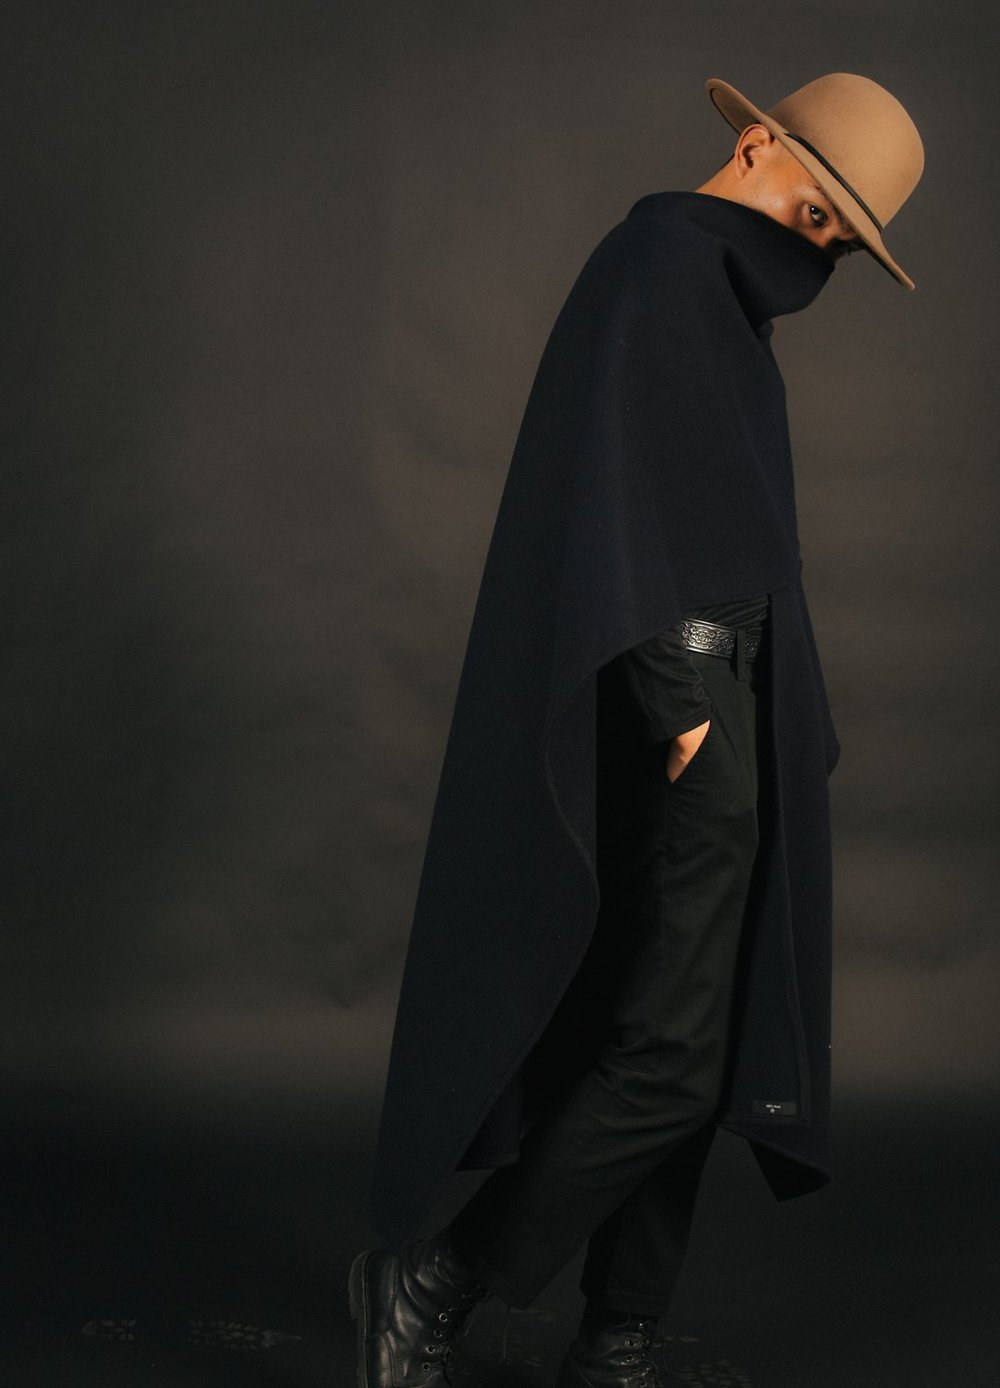 Mistohn featured vegan capes made of pinatex, a recycled pineapple fibre. Image  via